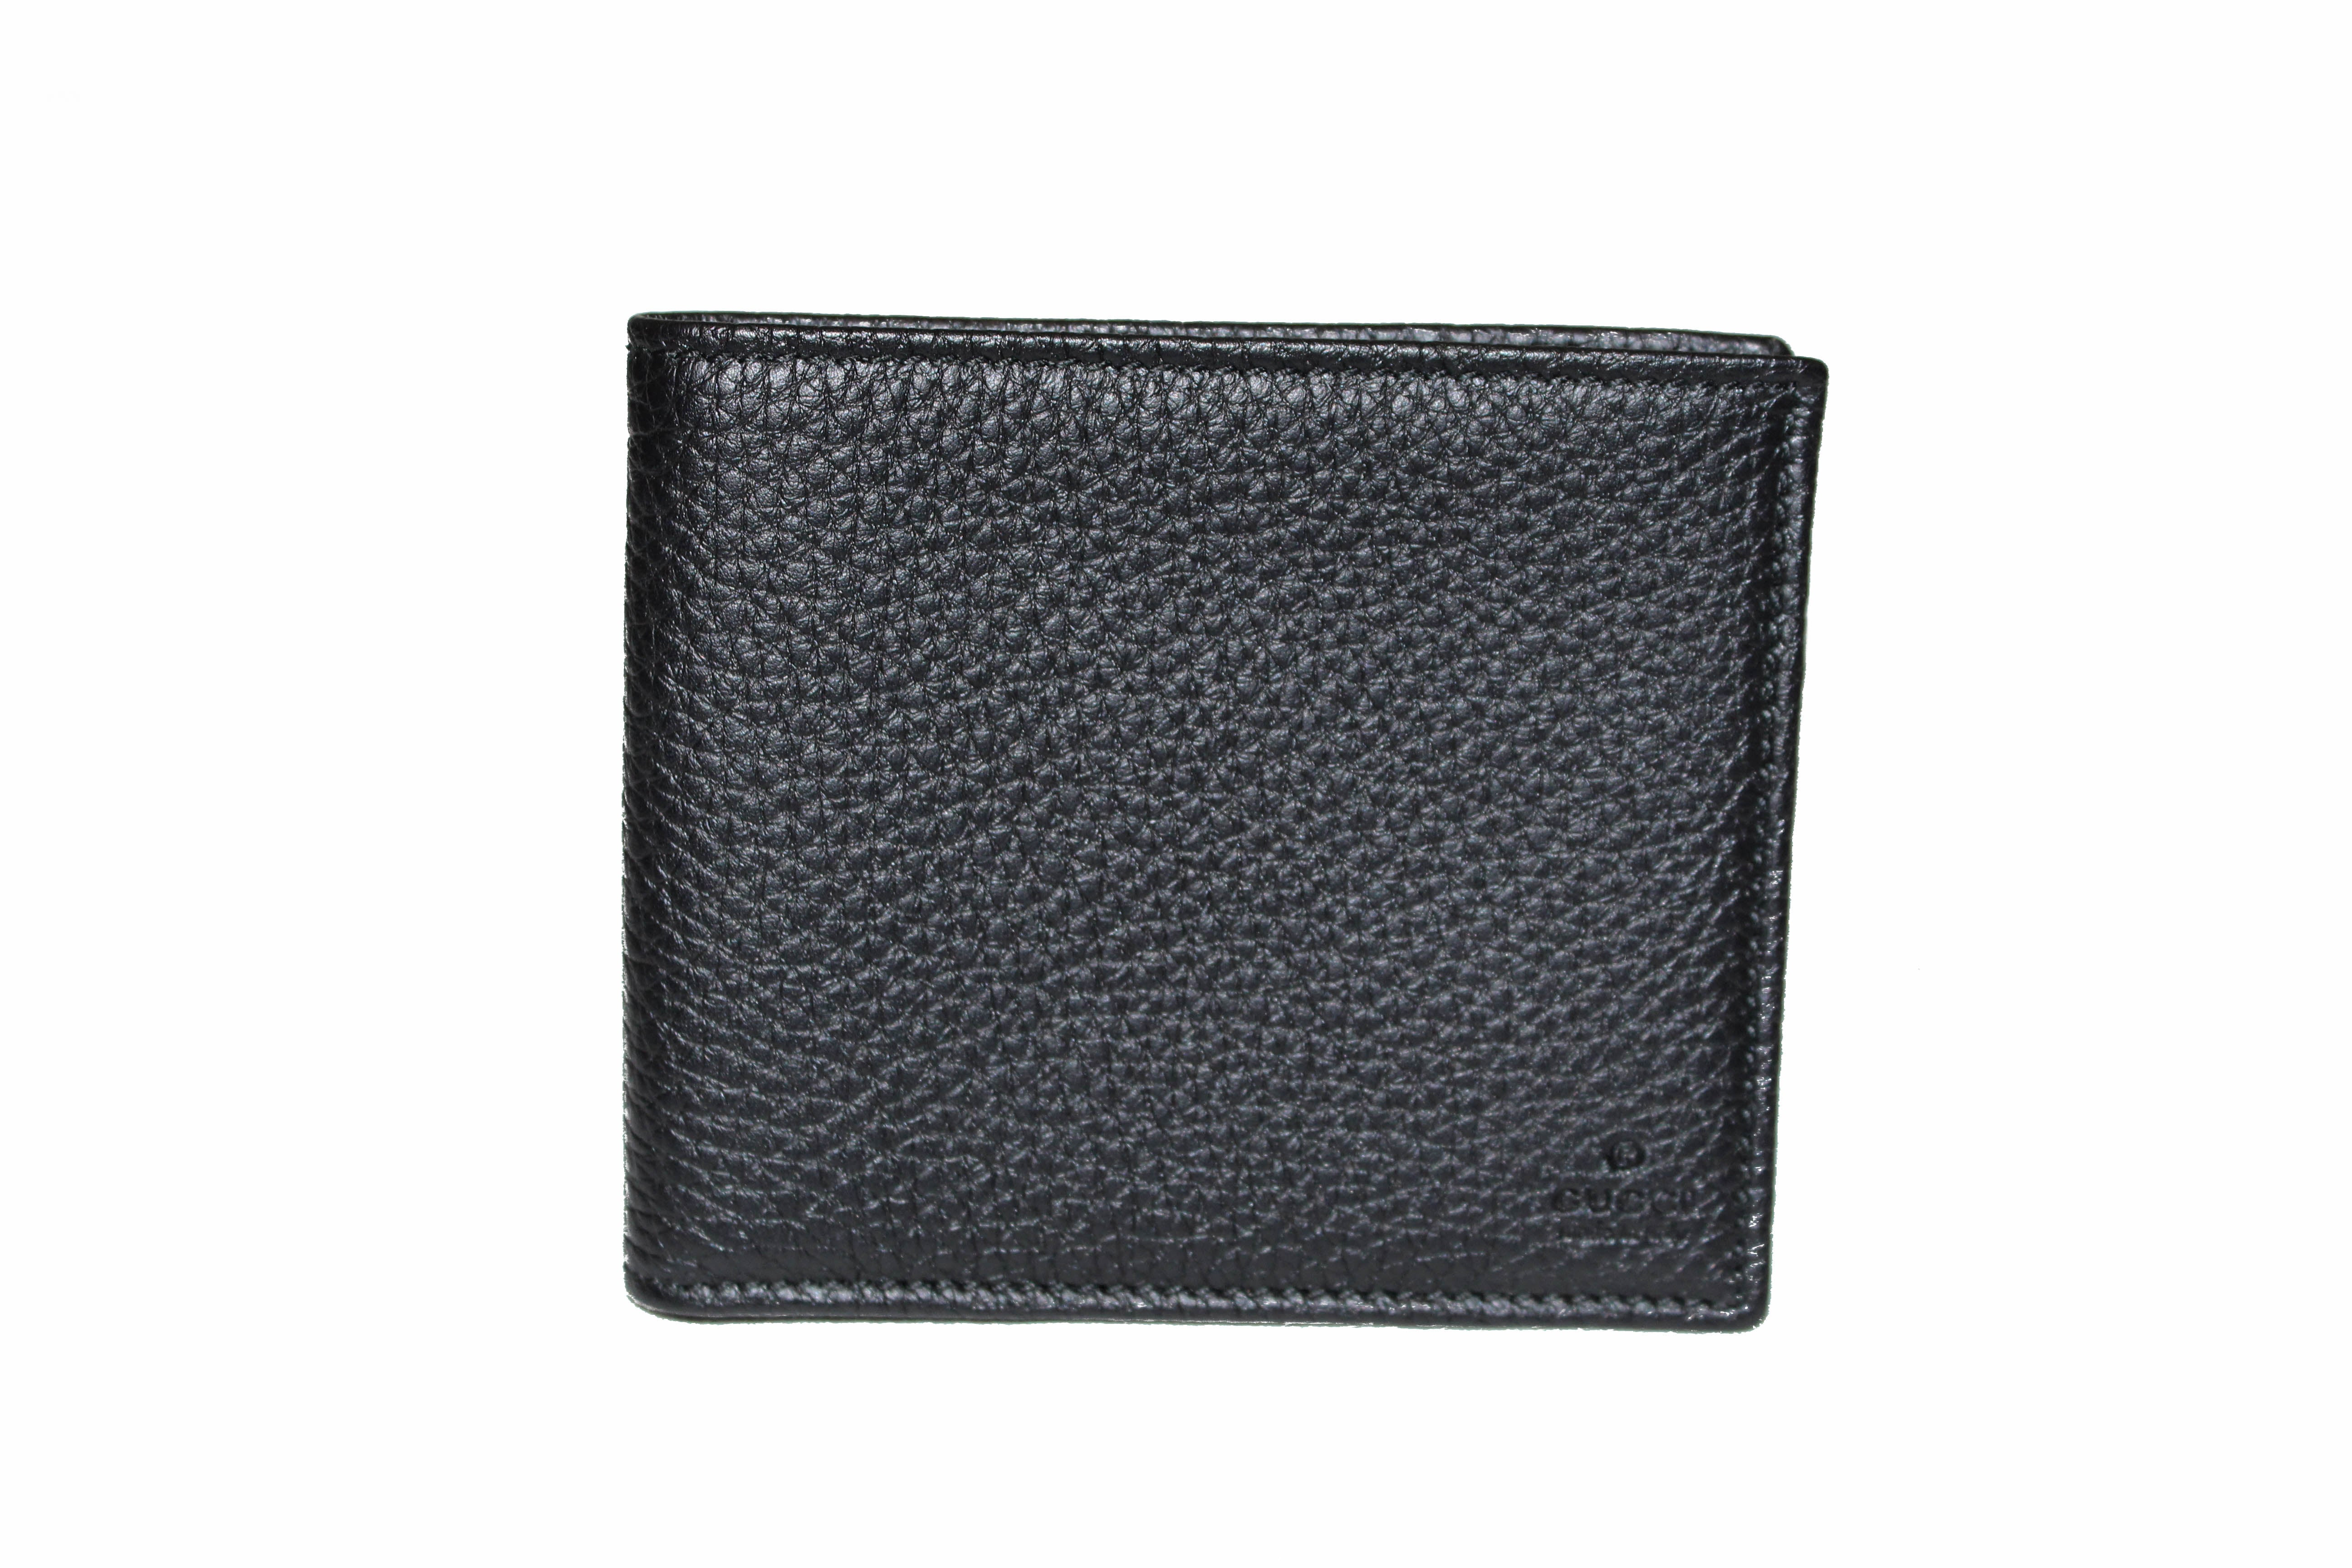 Authentic New Gucci Black Soho Leather Bifold Men's Wallet